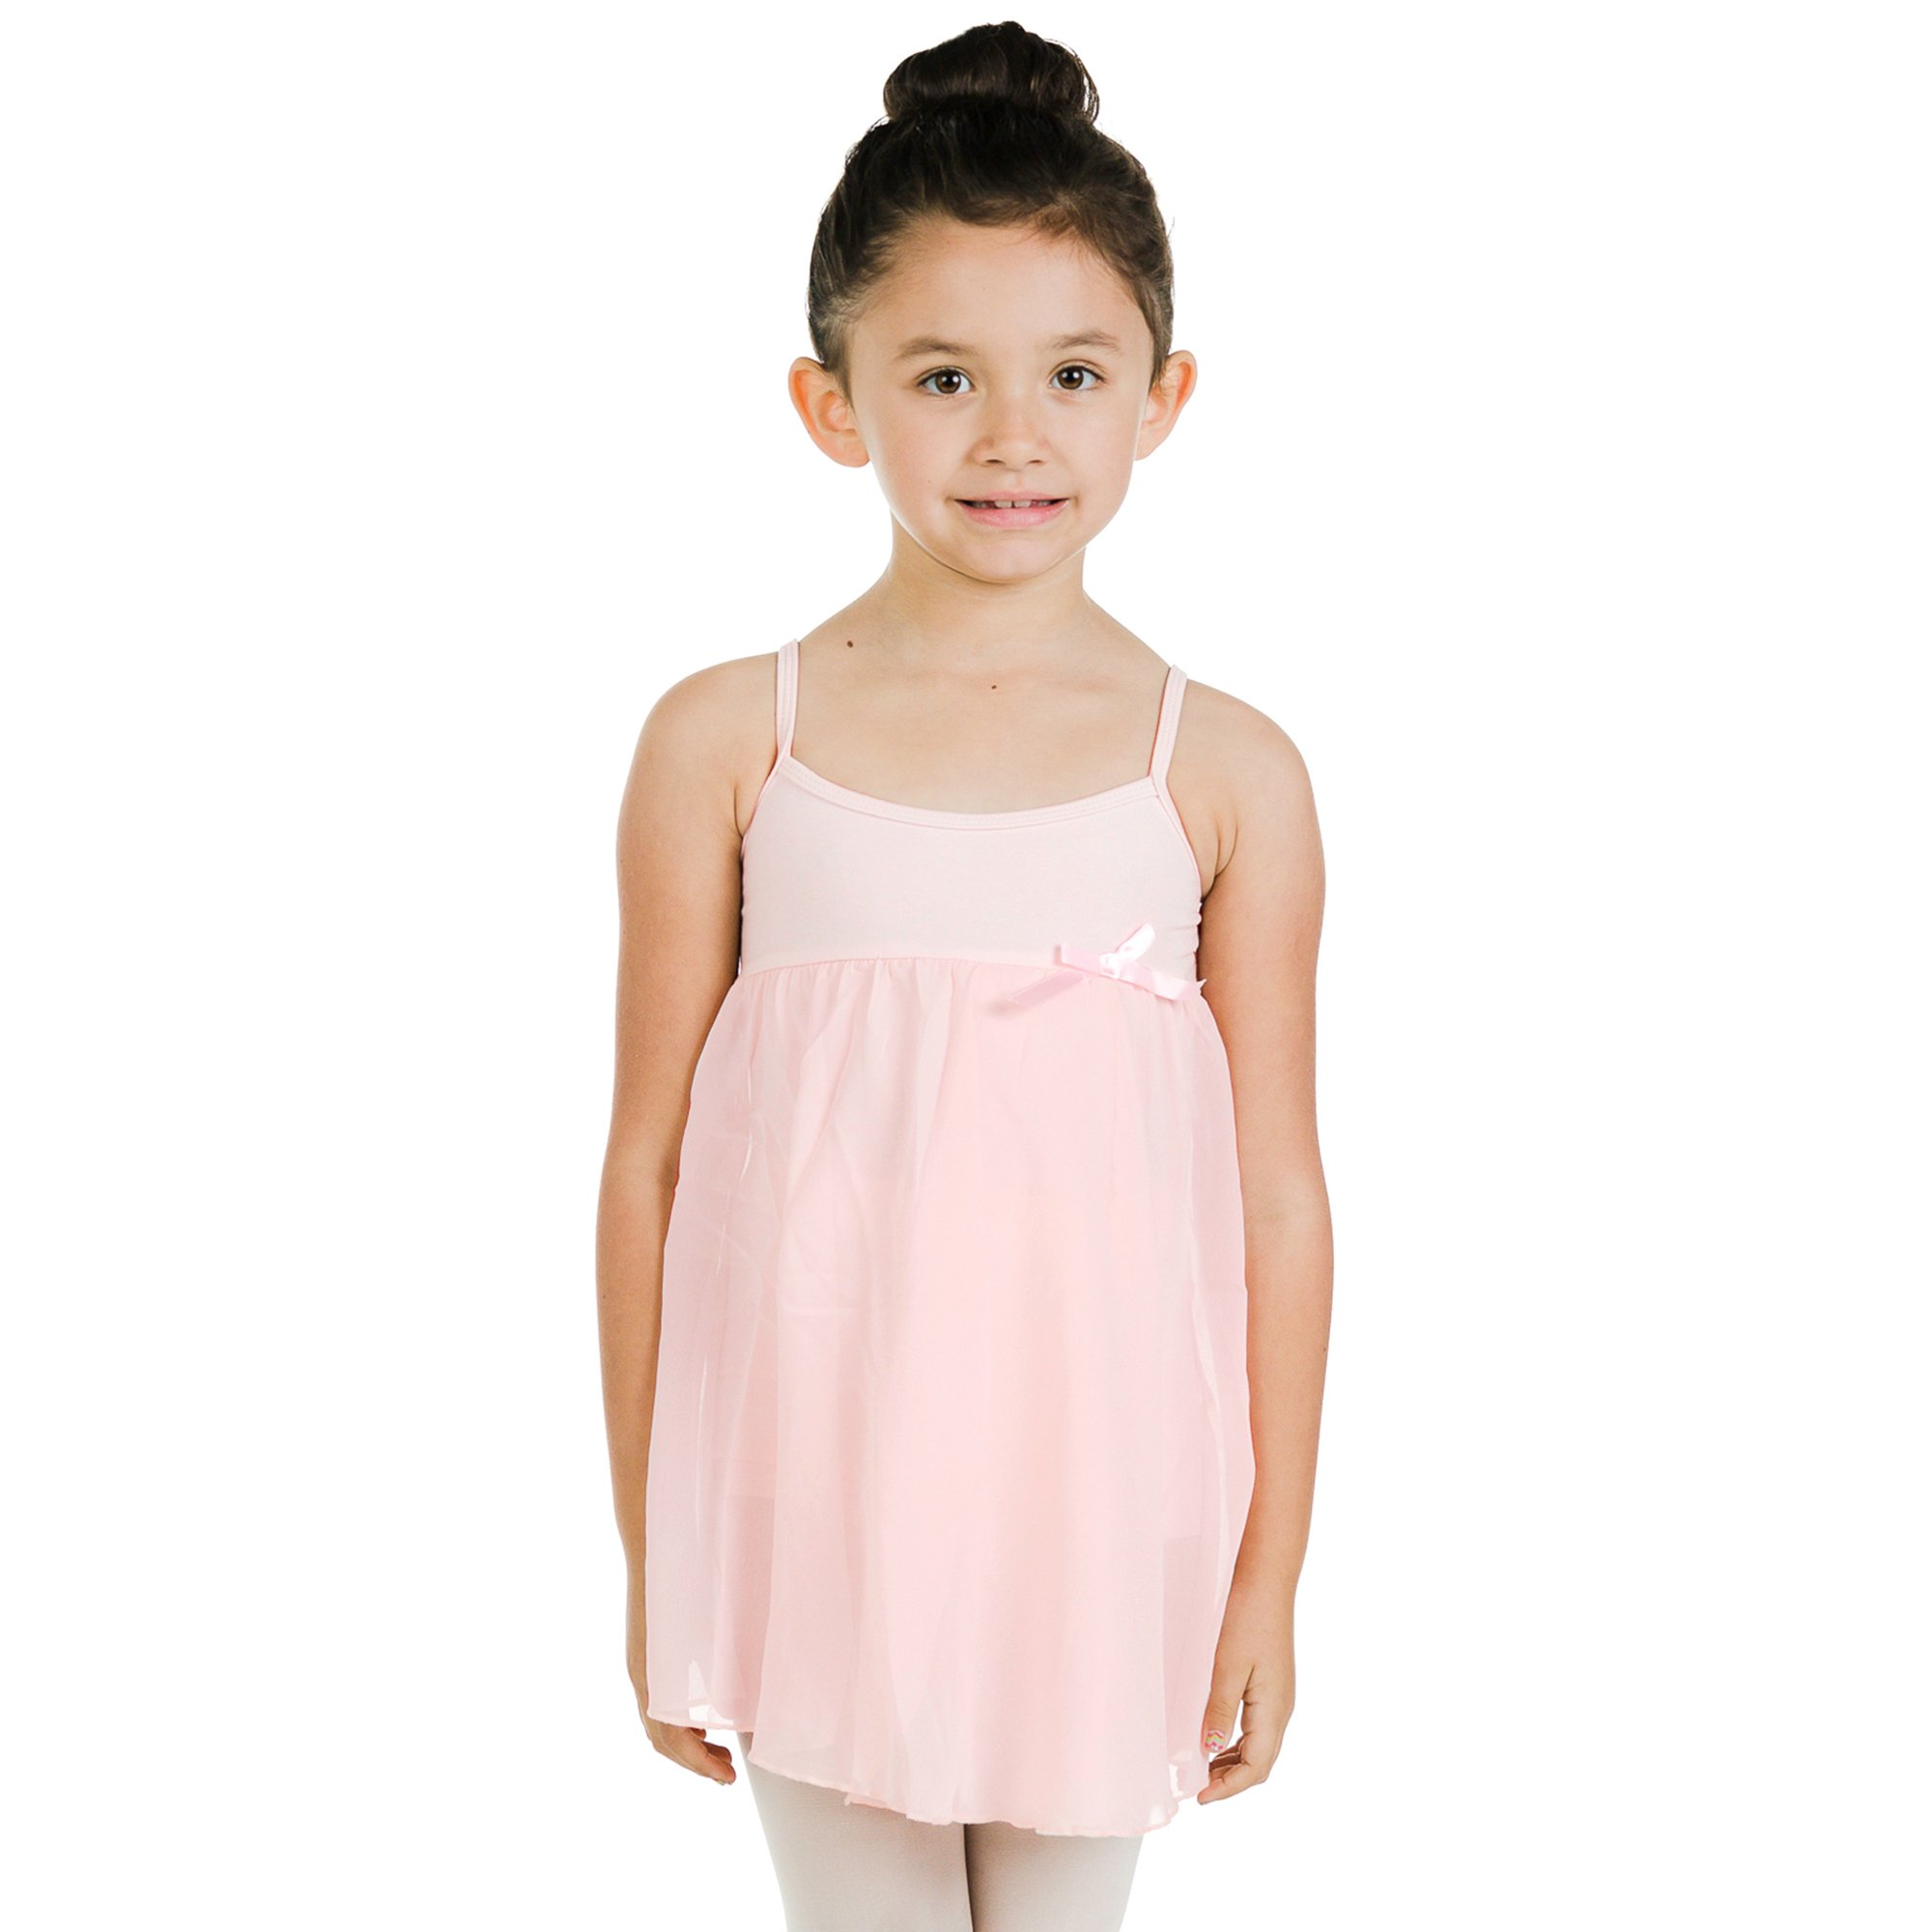 Danzcue Girl's Camisole Dress leotard